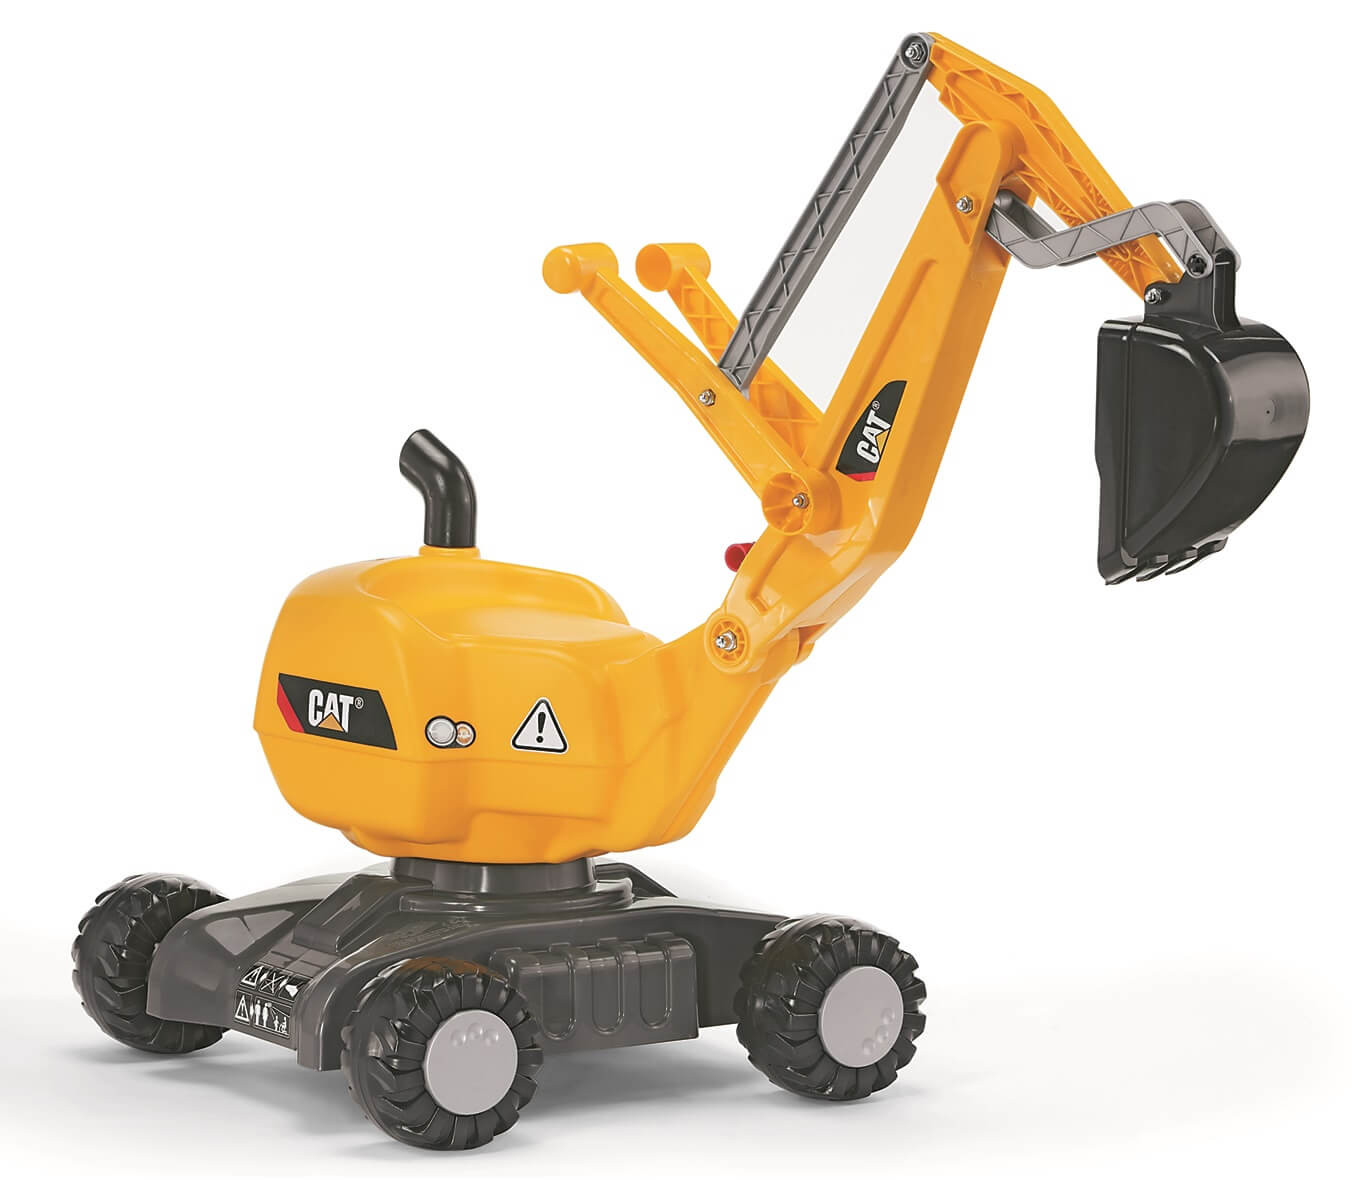 Digger Toy Rolly Toys Digger Cat 360 Degree Excavator Digger Ride On